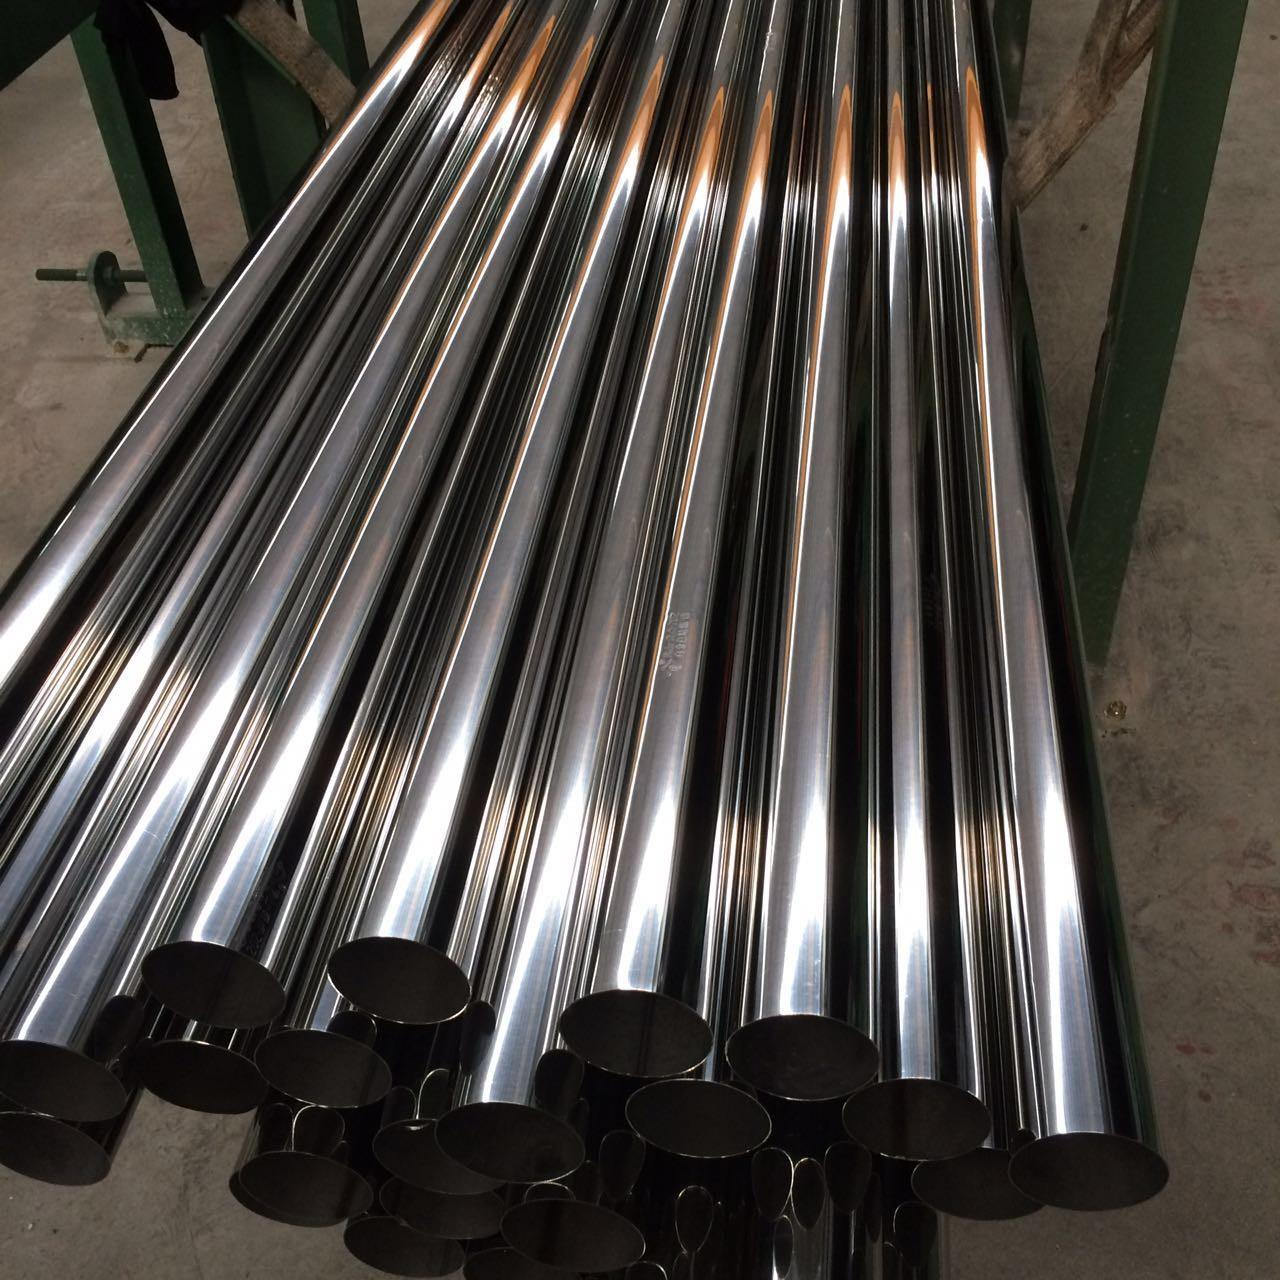 China 304 Stainless Steel Tube Sizes Factory Prices with 6m length polished finish Manufactures